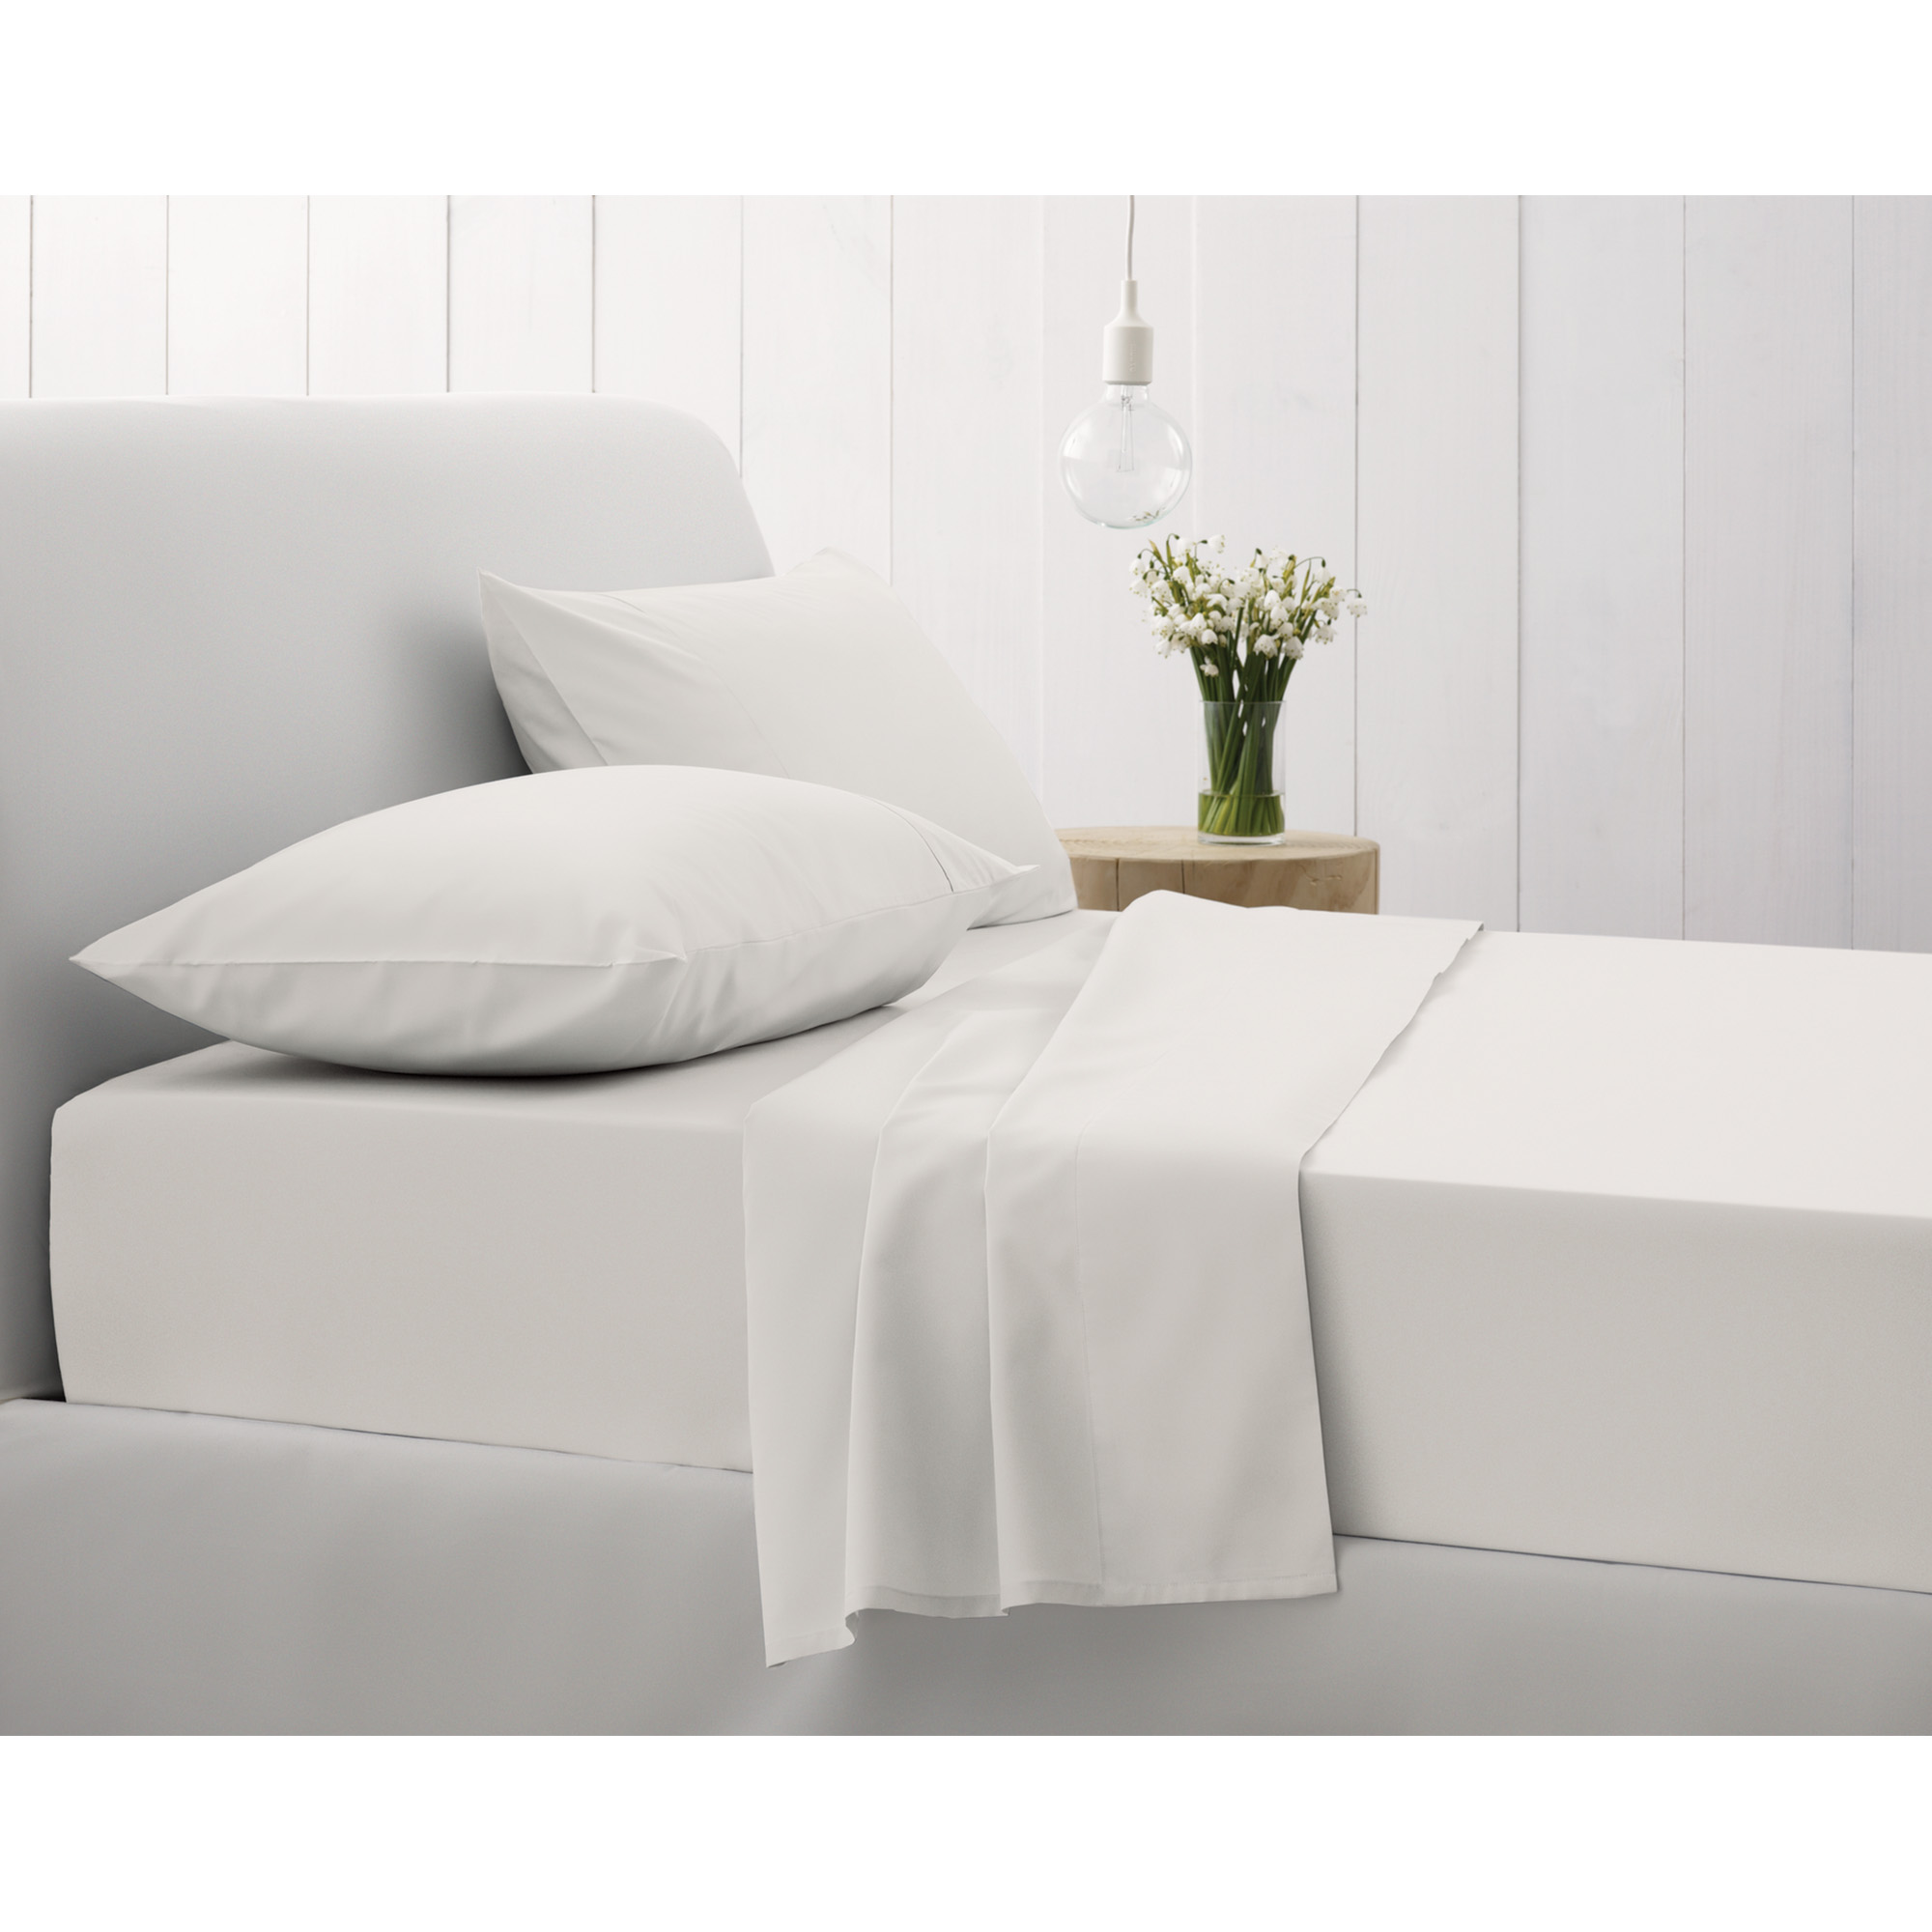 500TC FITTED SHEET DOUBLE SNOW